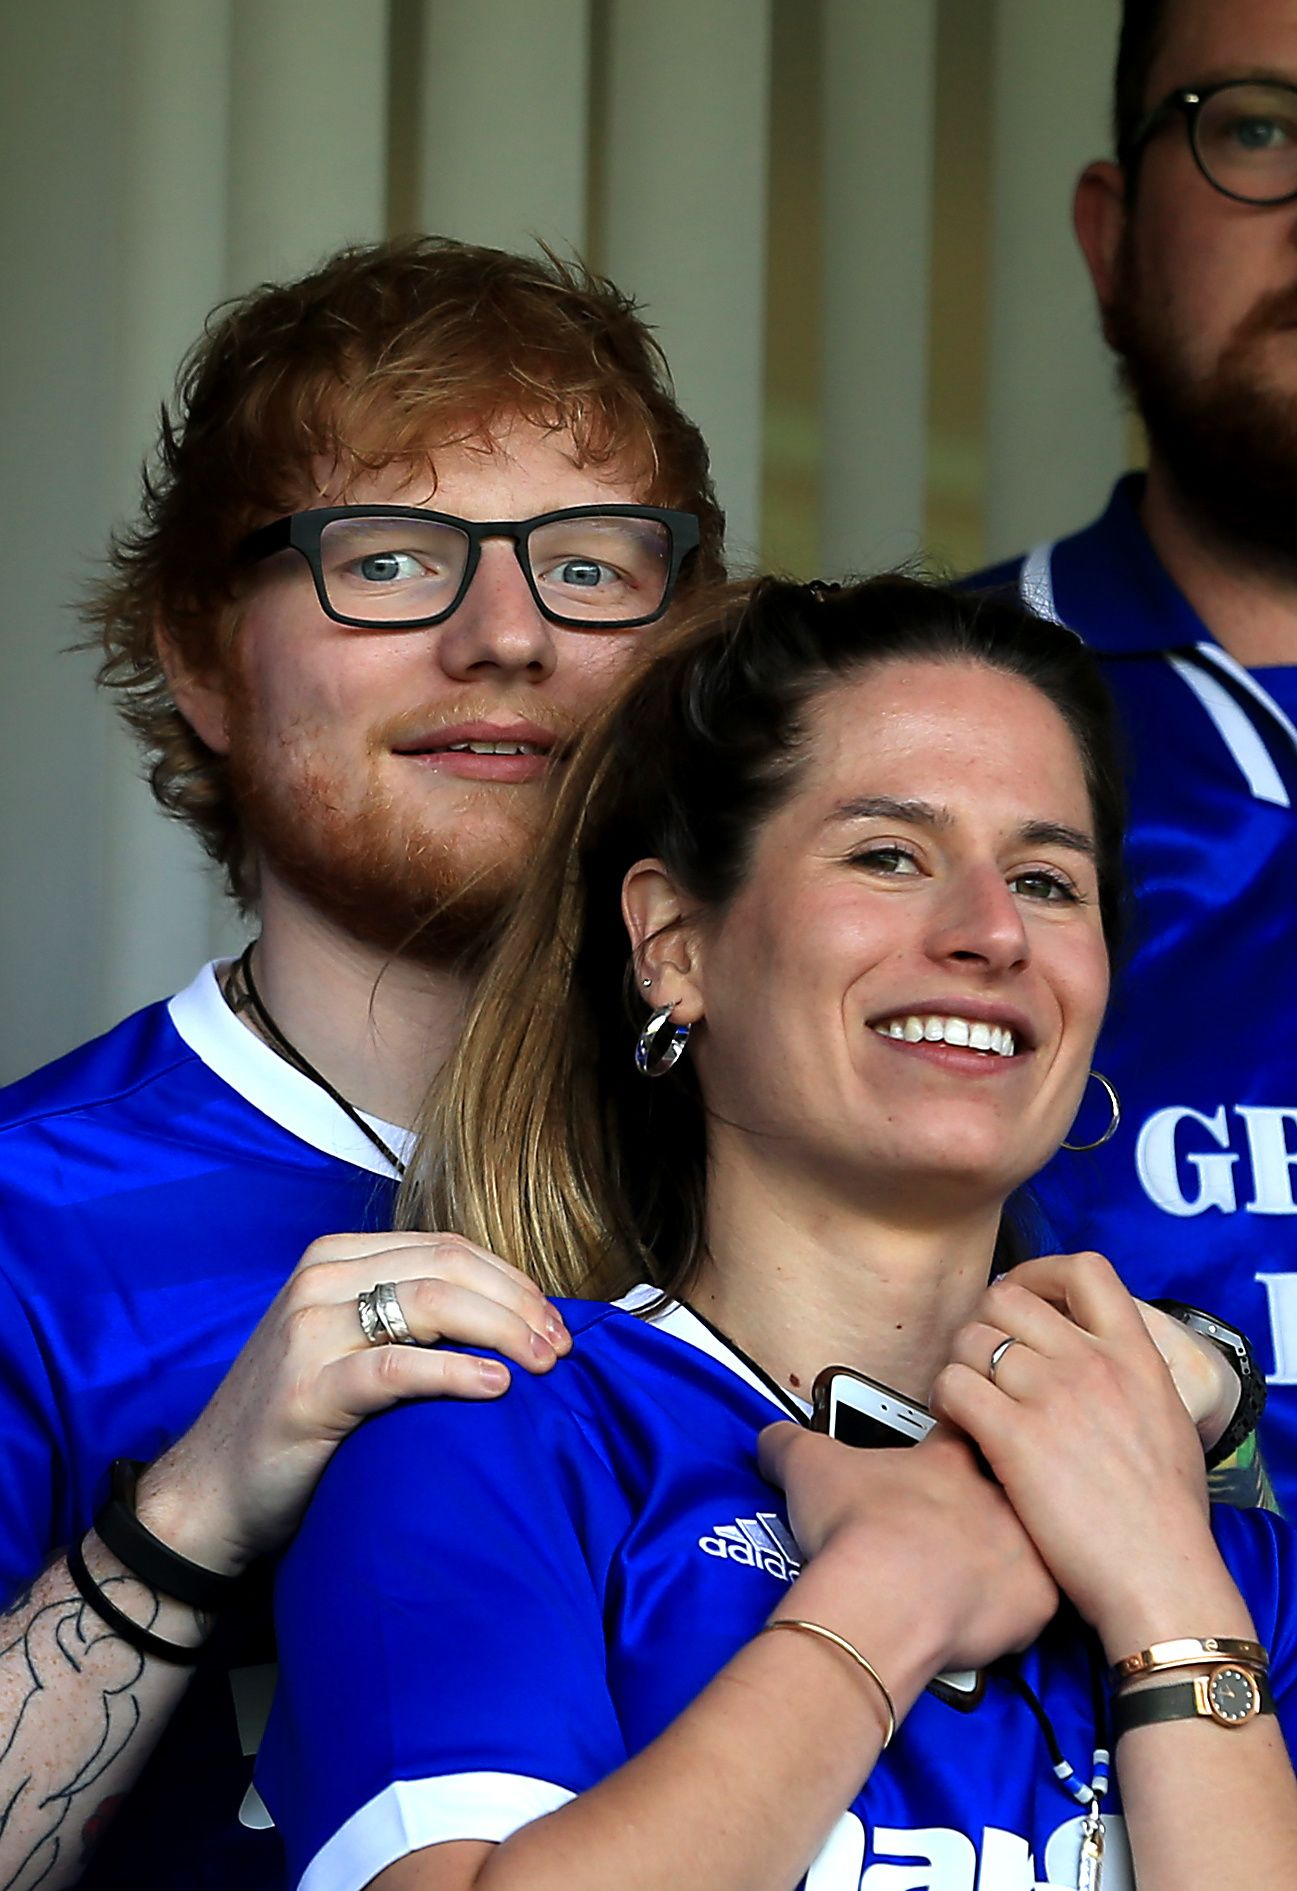 Musician Ed Sheeran and fiance Cherry Seaborn look at the Sky Bet Championship match between Ipswich Town and Aston Villa at Portman Road on April 21, 2018 | Photo: Getty Images